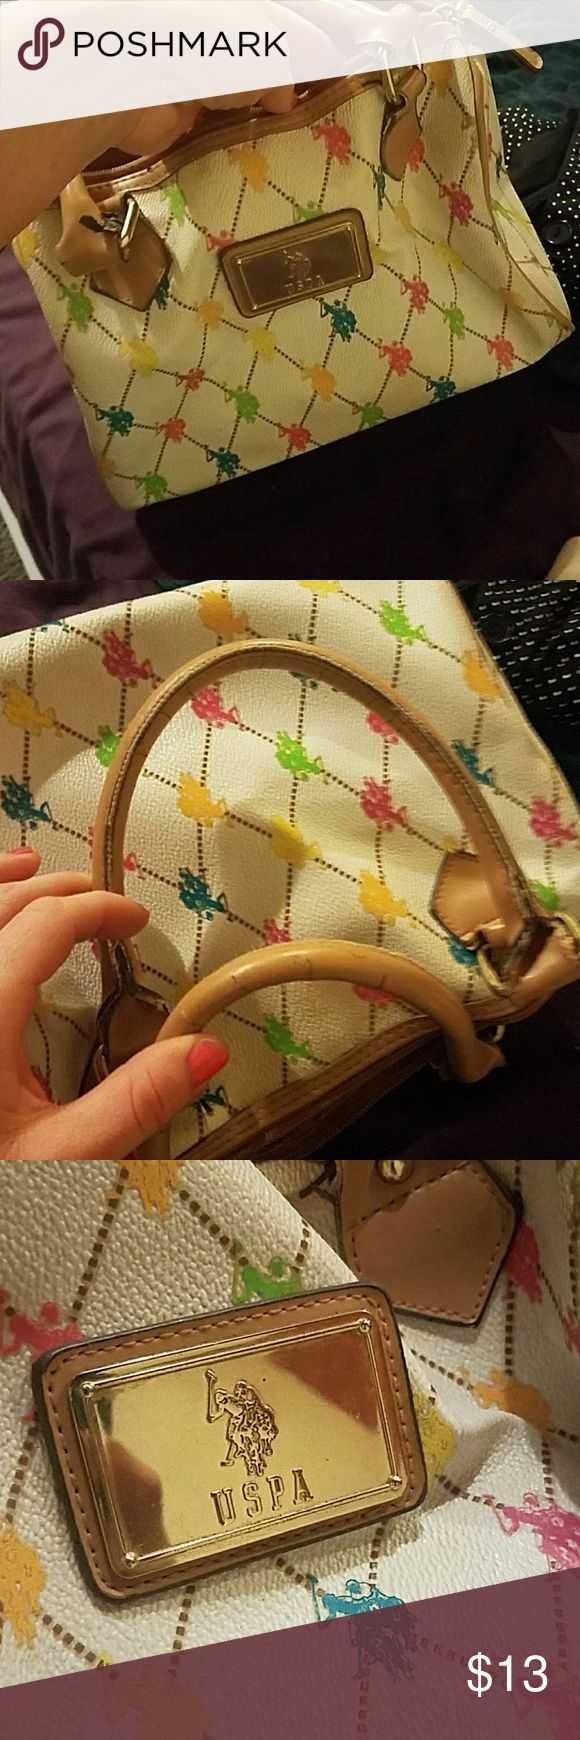 U.S. polo association purse Quilted pattern, bright rainbow logos, camel handles, some wear on the handles but still in good condition and very cute U.S. Polo Assn. Bags Mini Bags